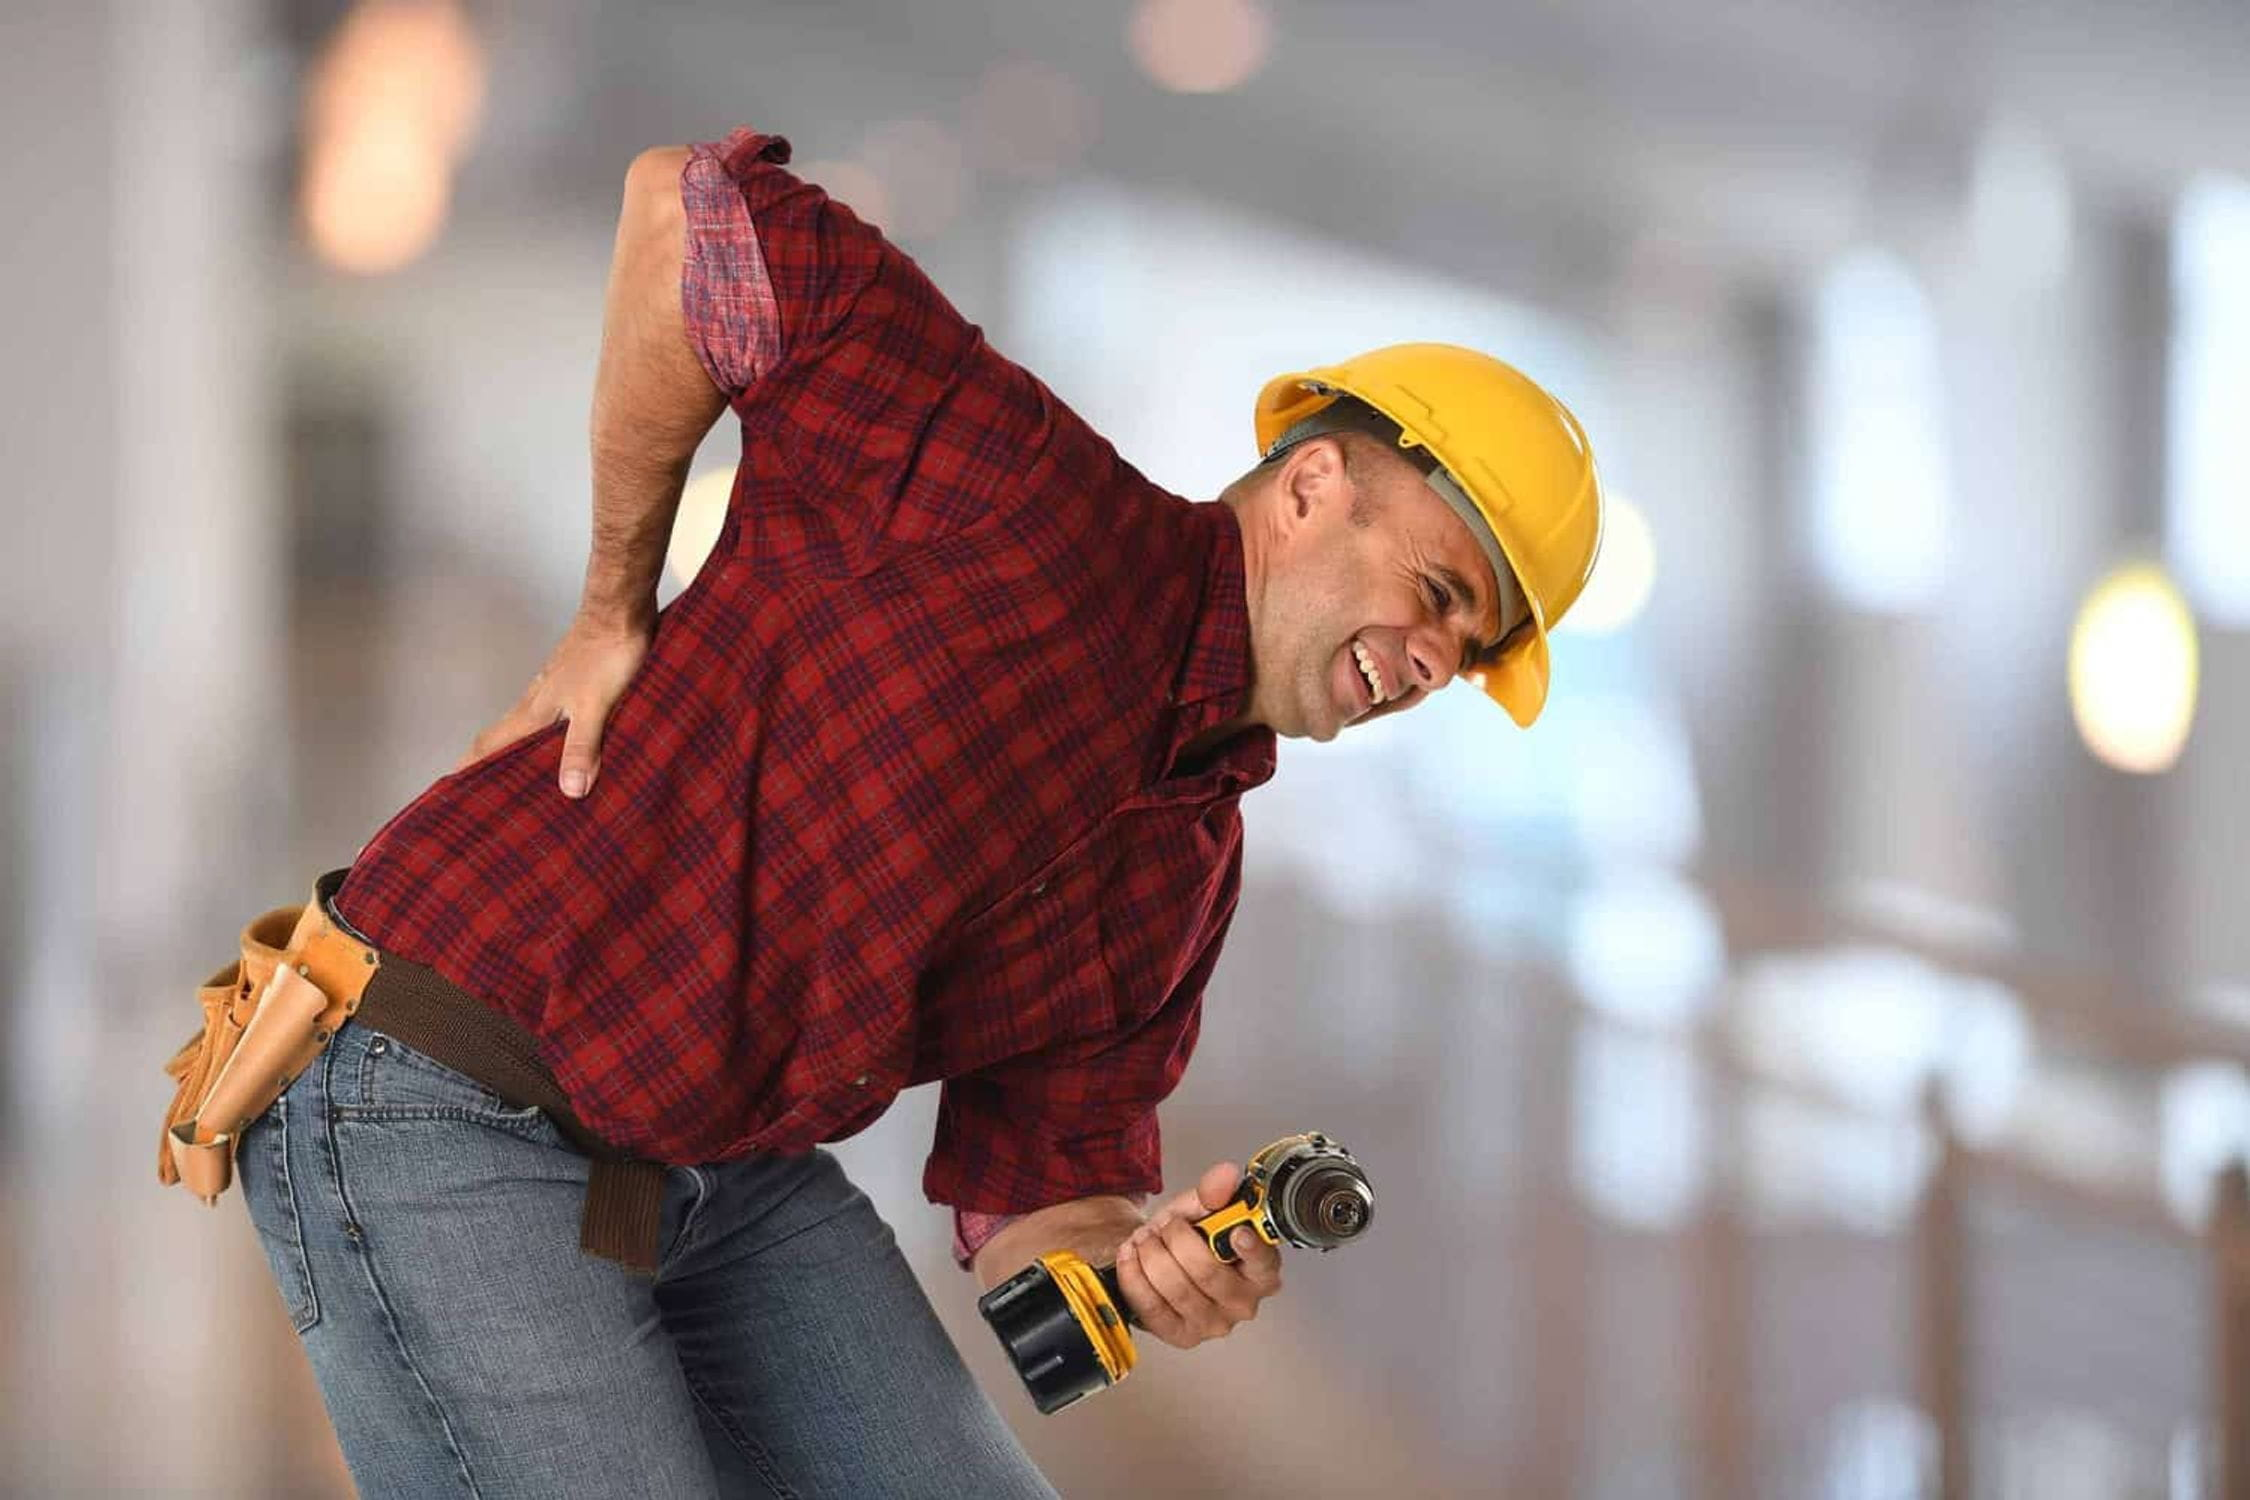 Construction worker holding drill who hurt his back.